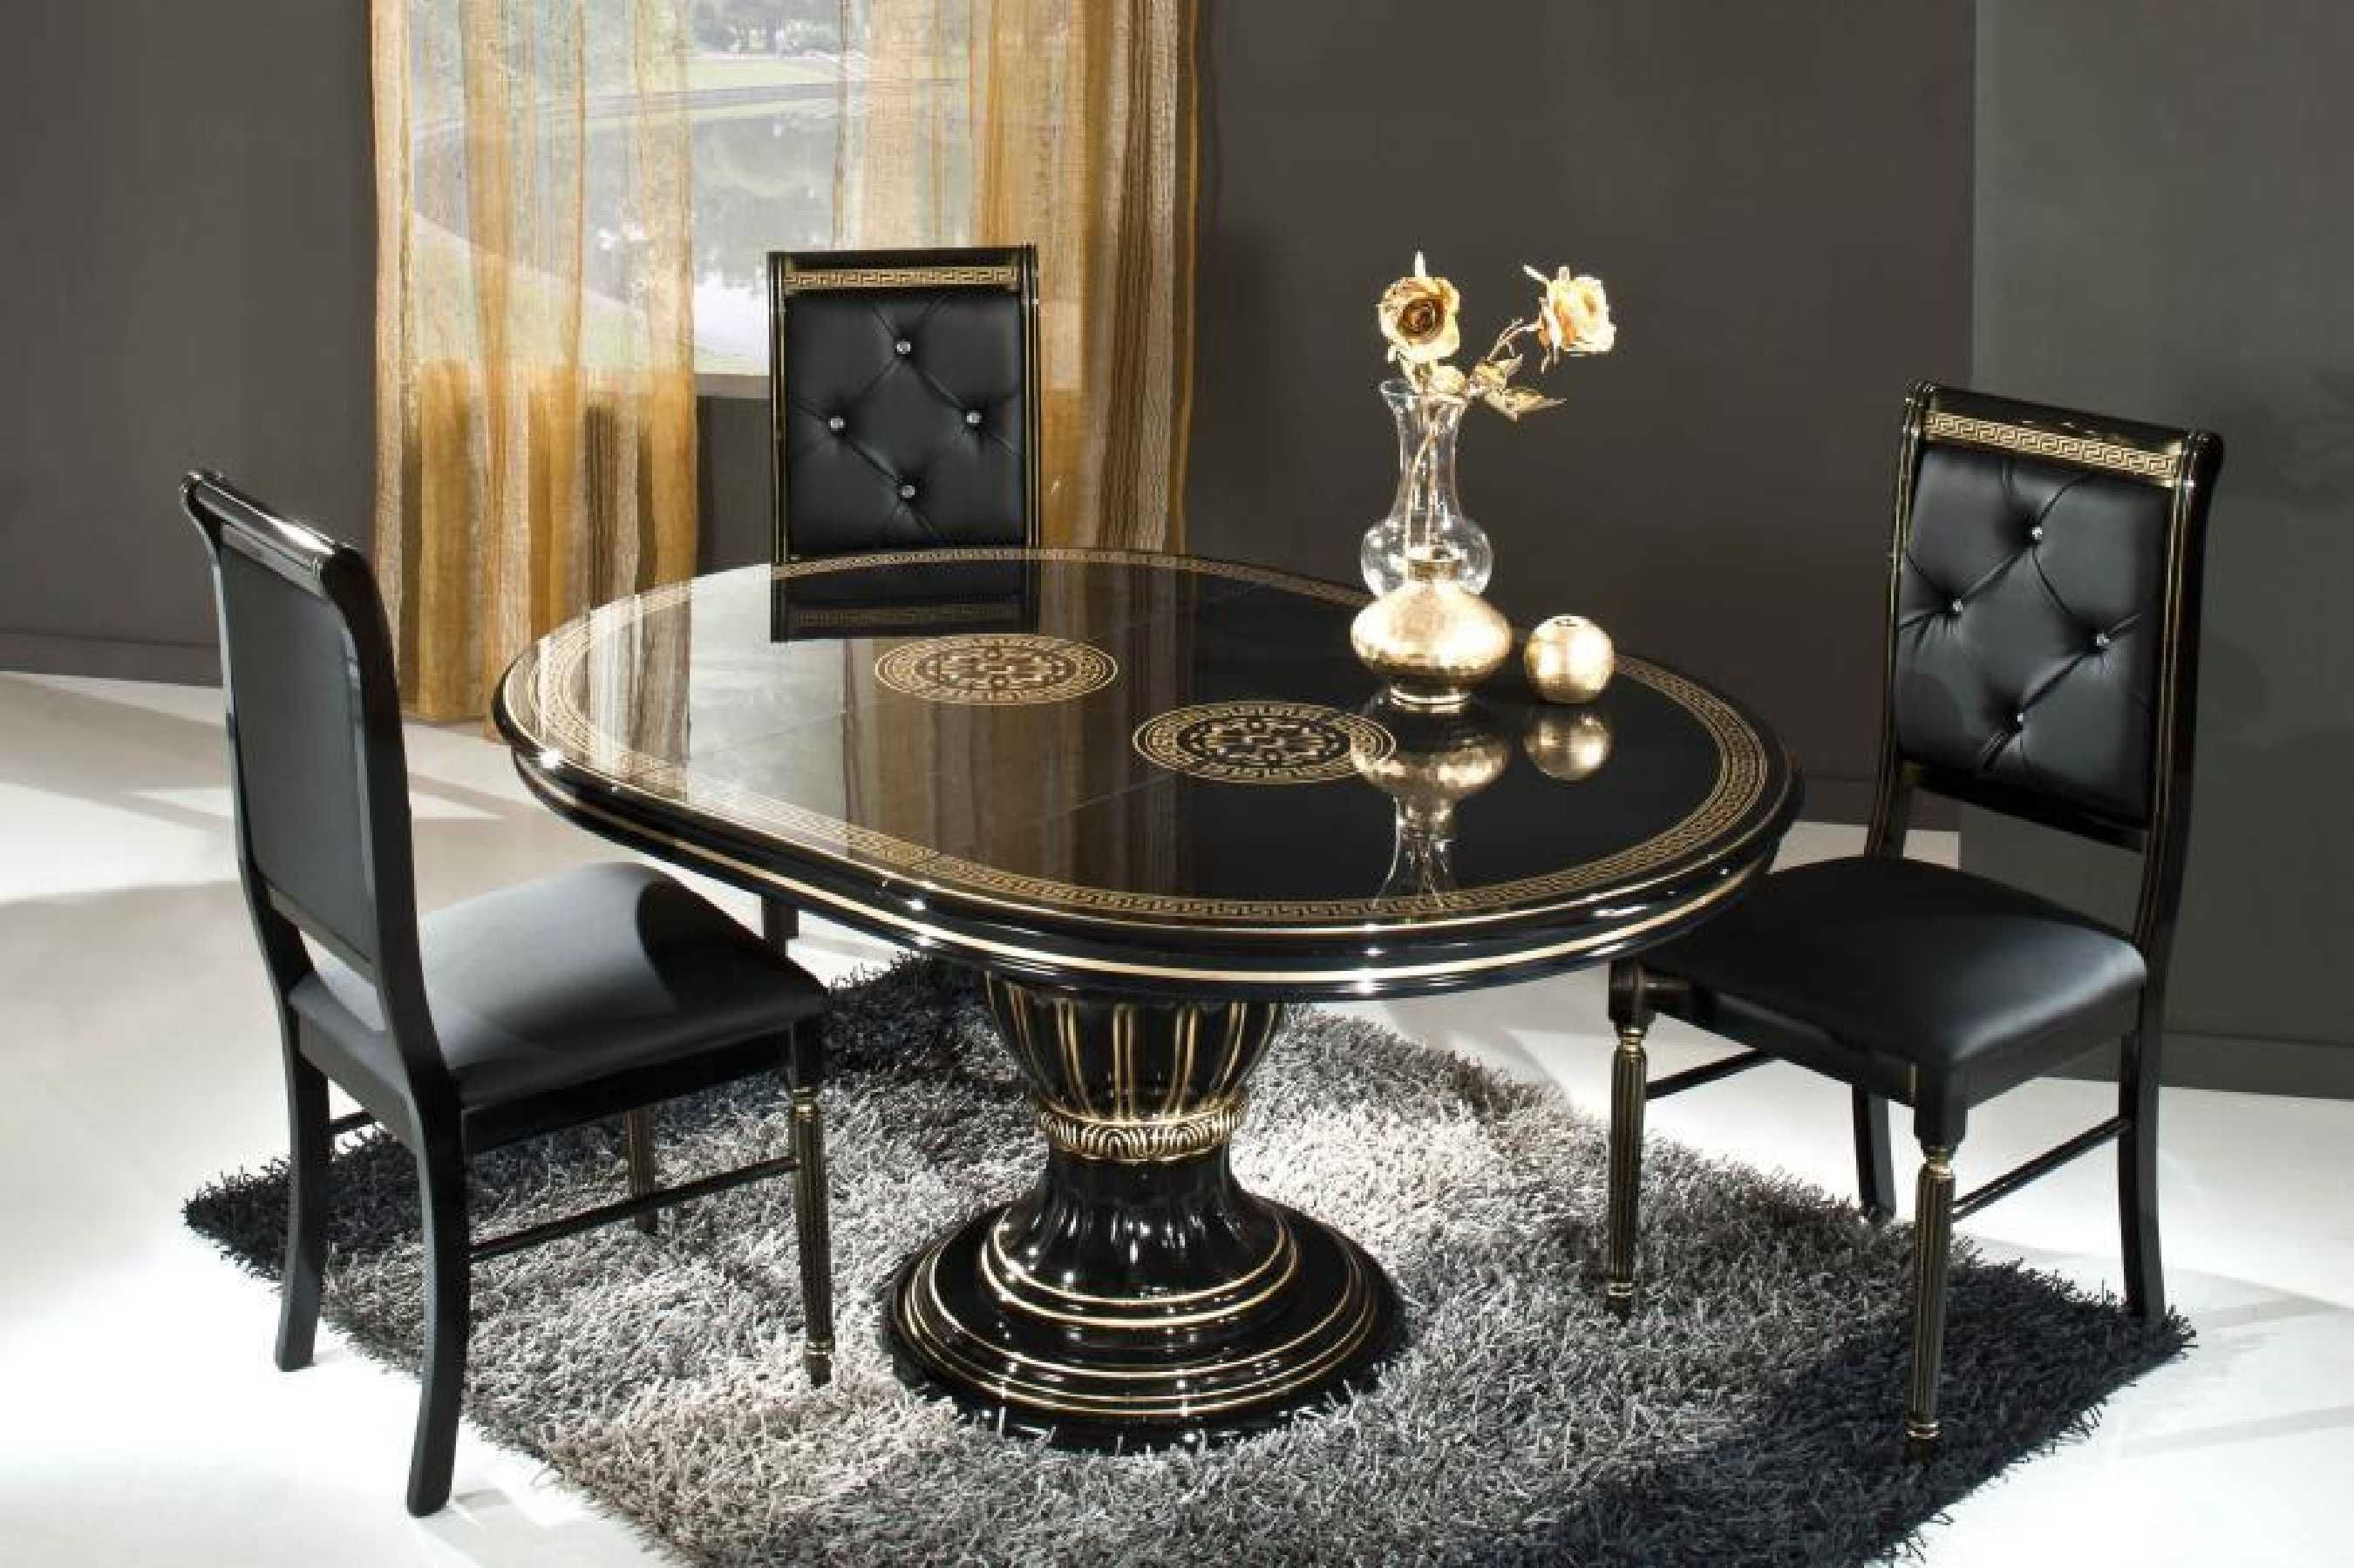 Dining Room Astonishing Black Round Extendable Modern Dining Table With Three Chairs In Round Dining Room Round Dining Room Table Round Pedestal Dining Table